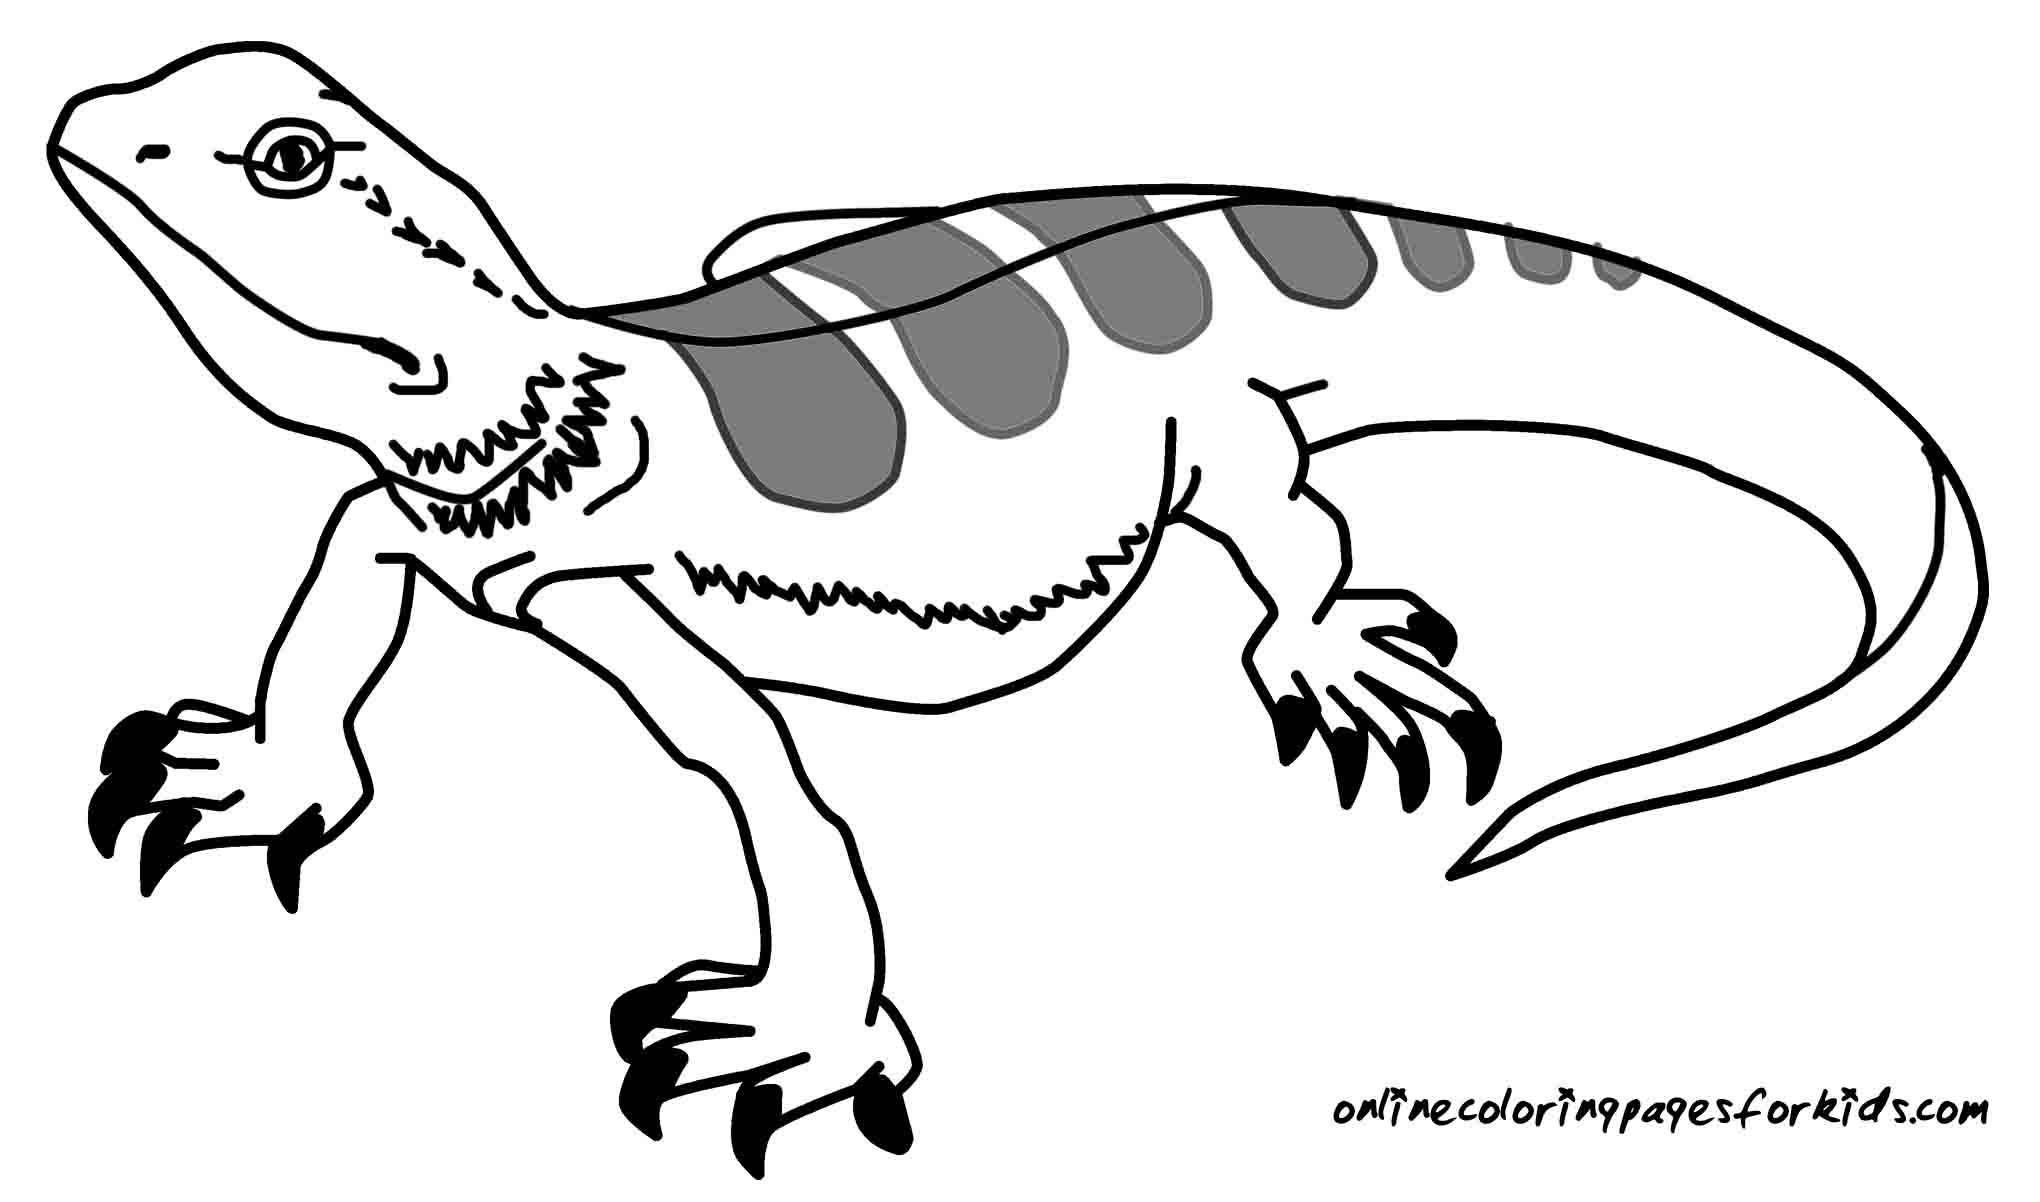 lizard picture to color lizard coloring pages color lizard to picture